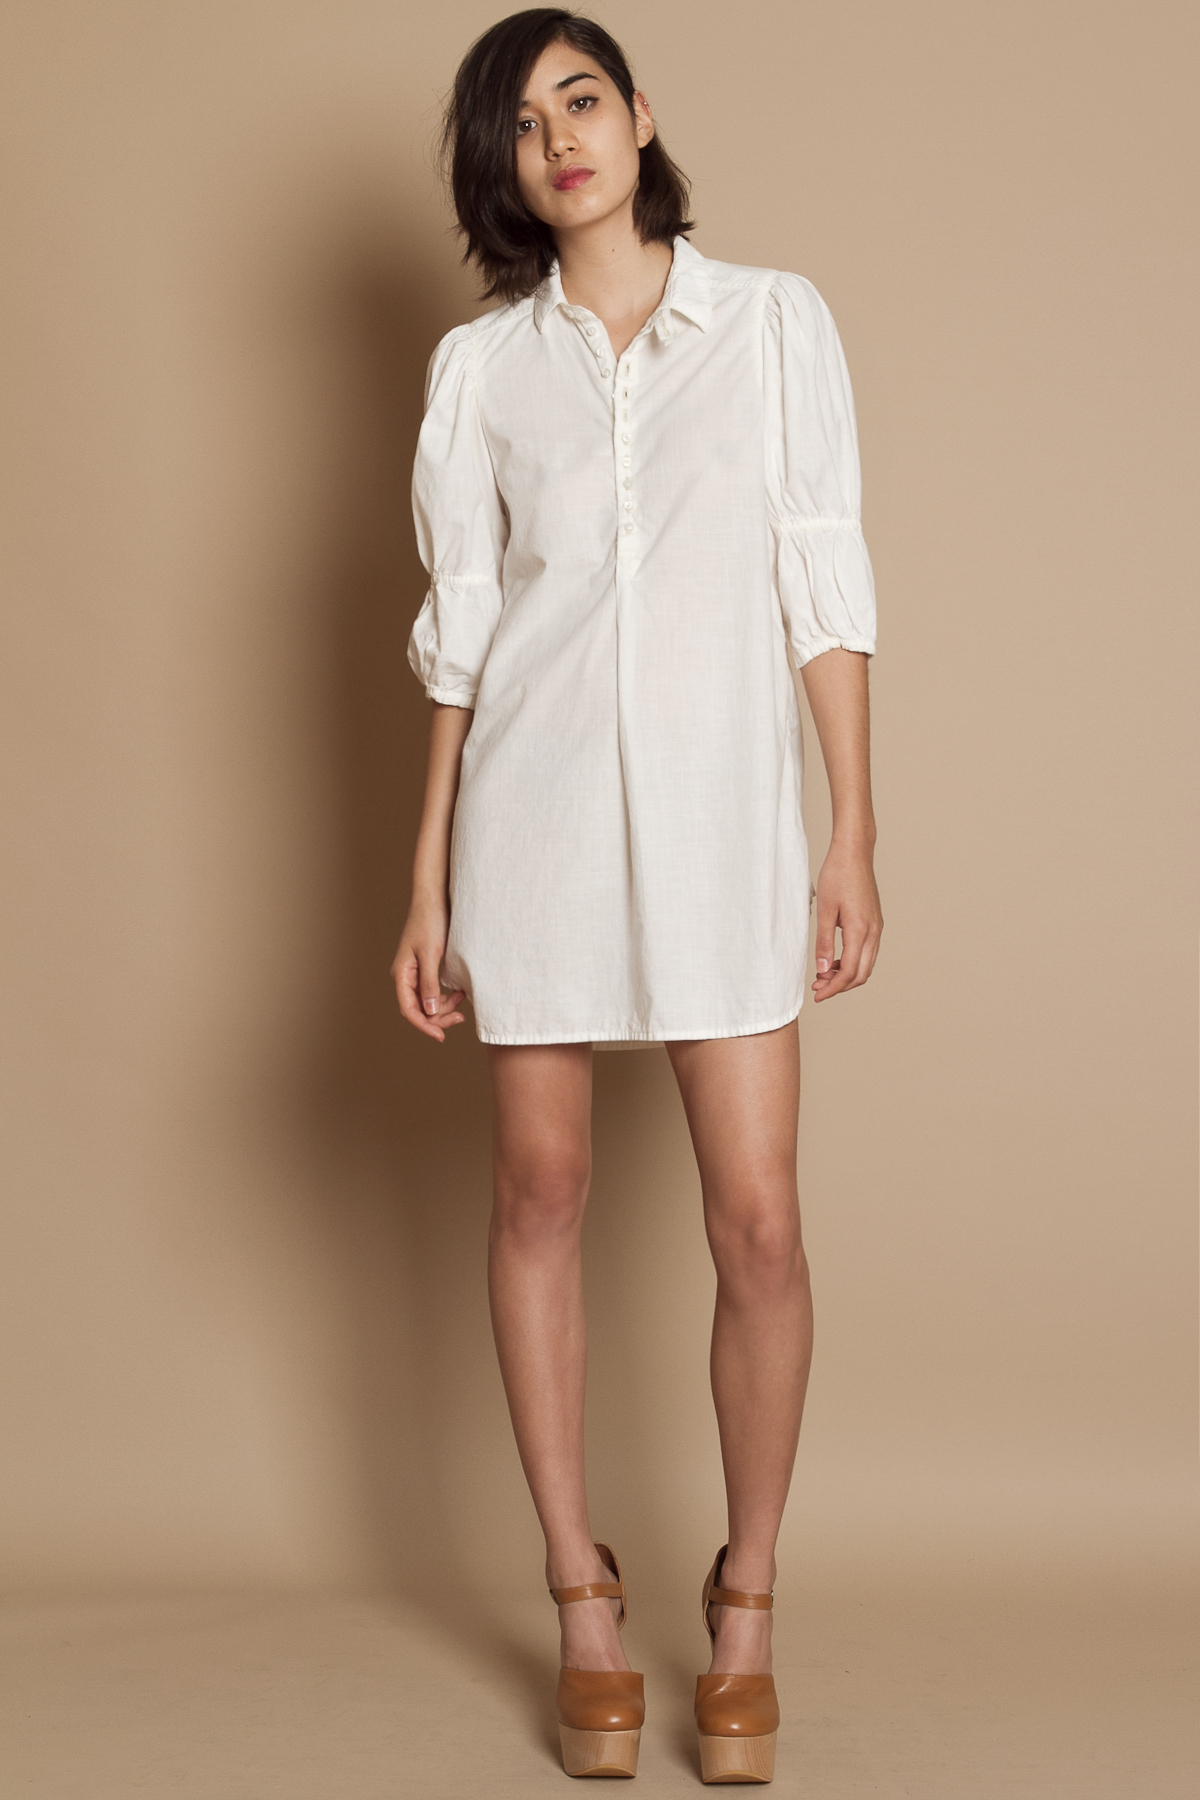 Such vintage-inspired shirt dresses are as fitting for work as they are for weekend outings and weeklong getaways, meaning any button-up dress you select will take your style far. Pick from our collection of pocketed shirt dresses and you'll reap the benefits of a functional-meets-fashionable outfit for picnics and cocktails alike.